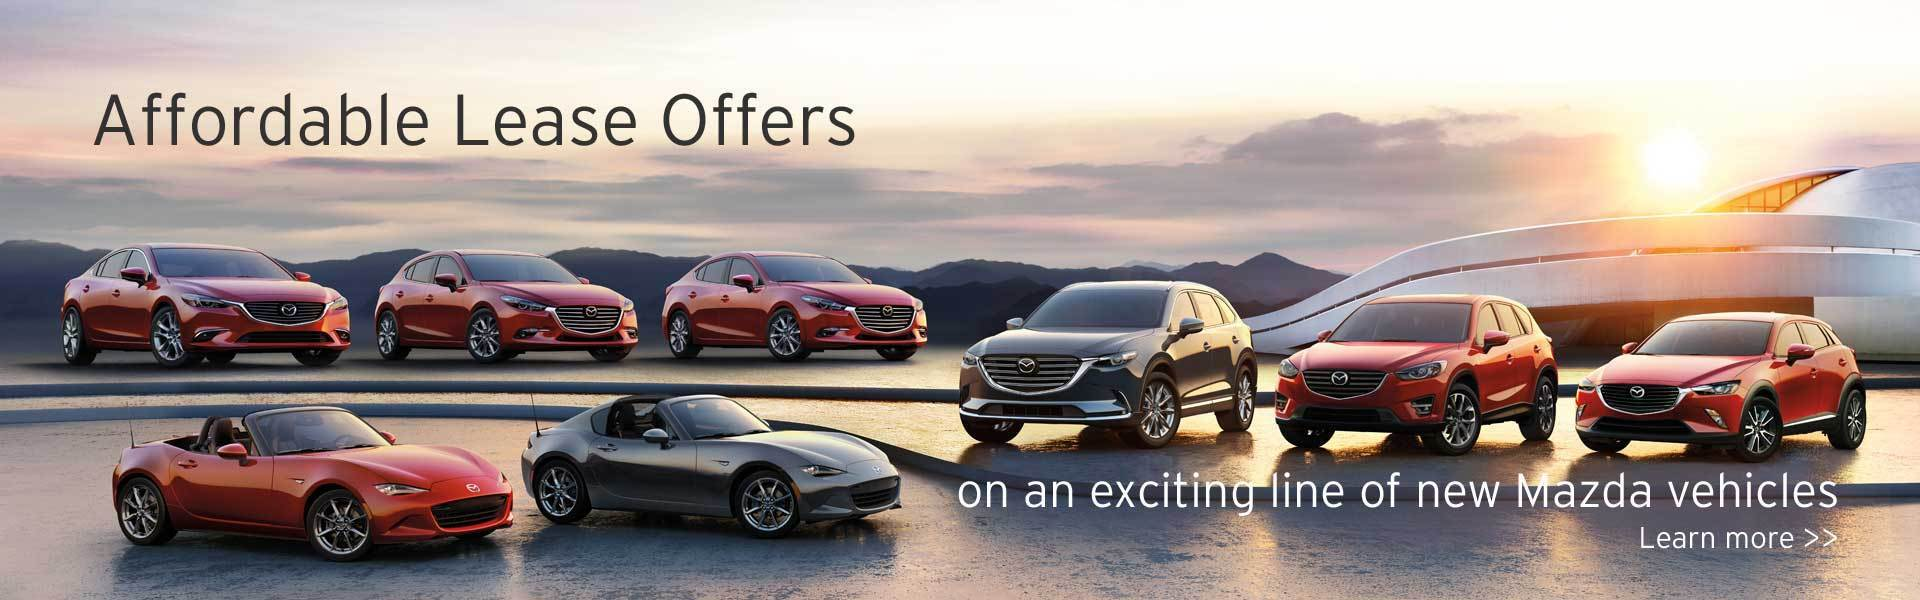 mazda dealership mesquite tx used cars mazda of mesquite mazda 2016 2016 5 and 2017 lease offers